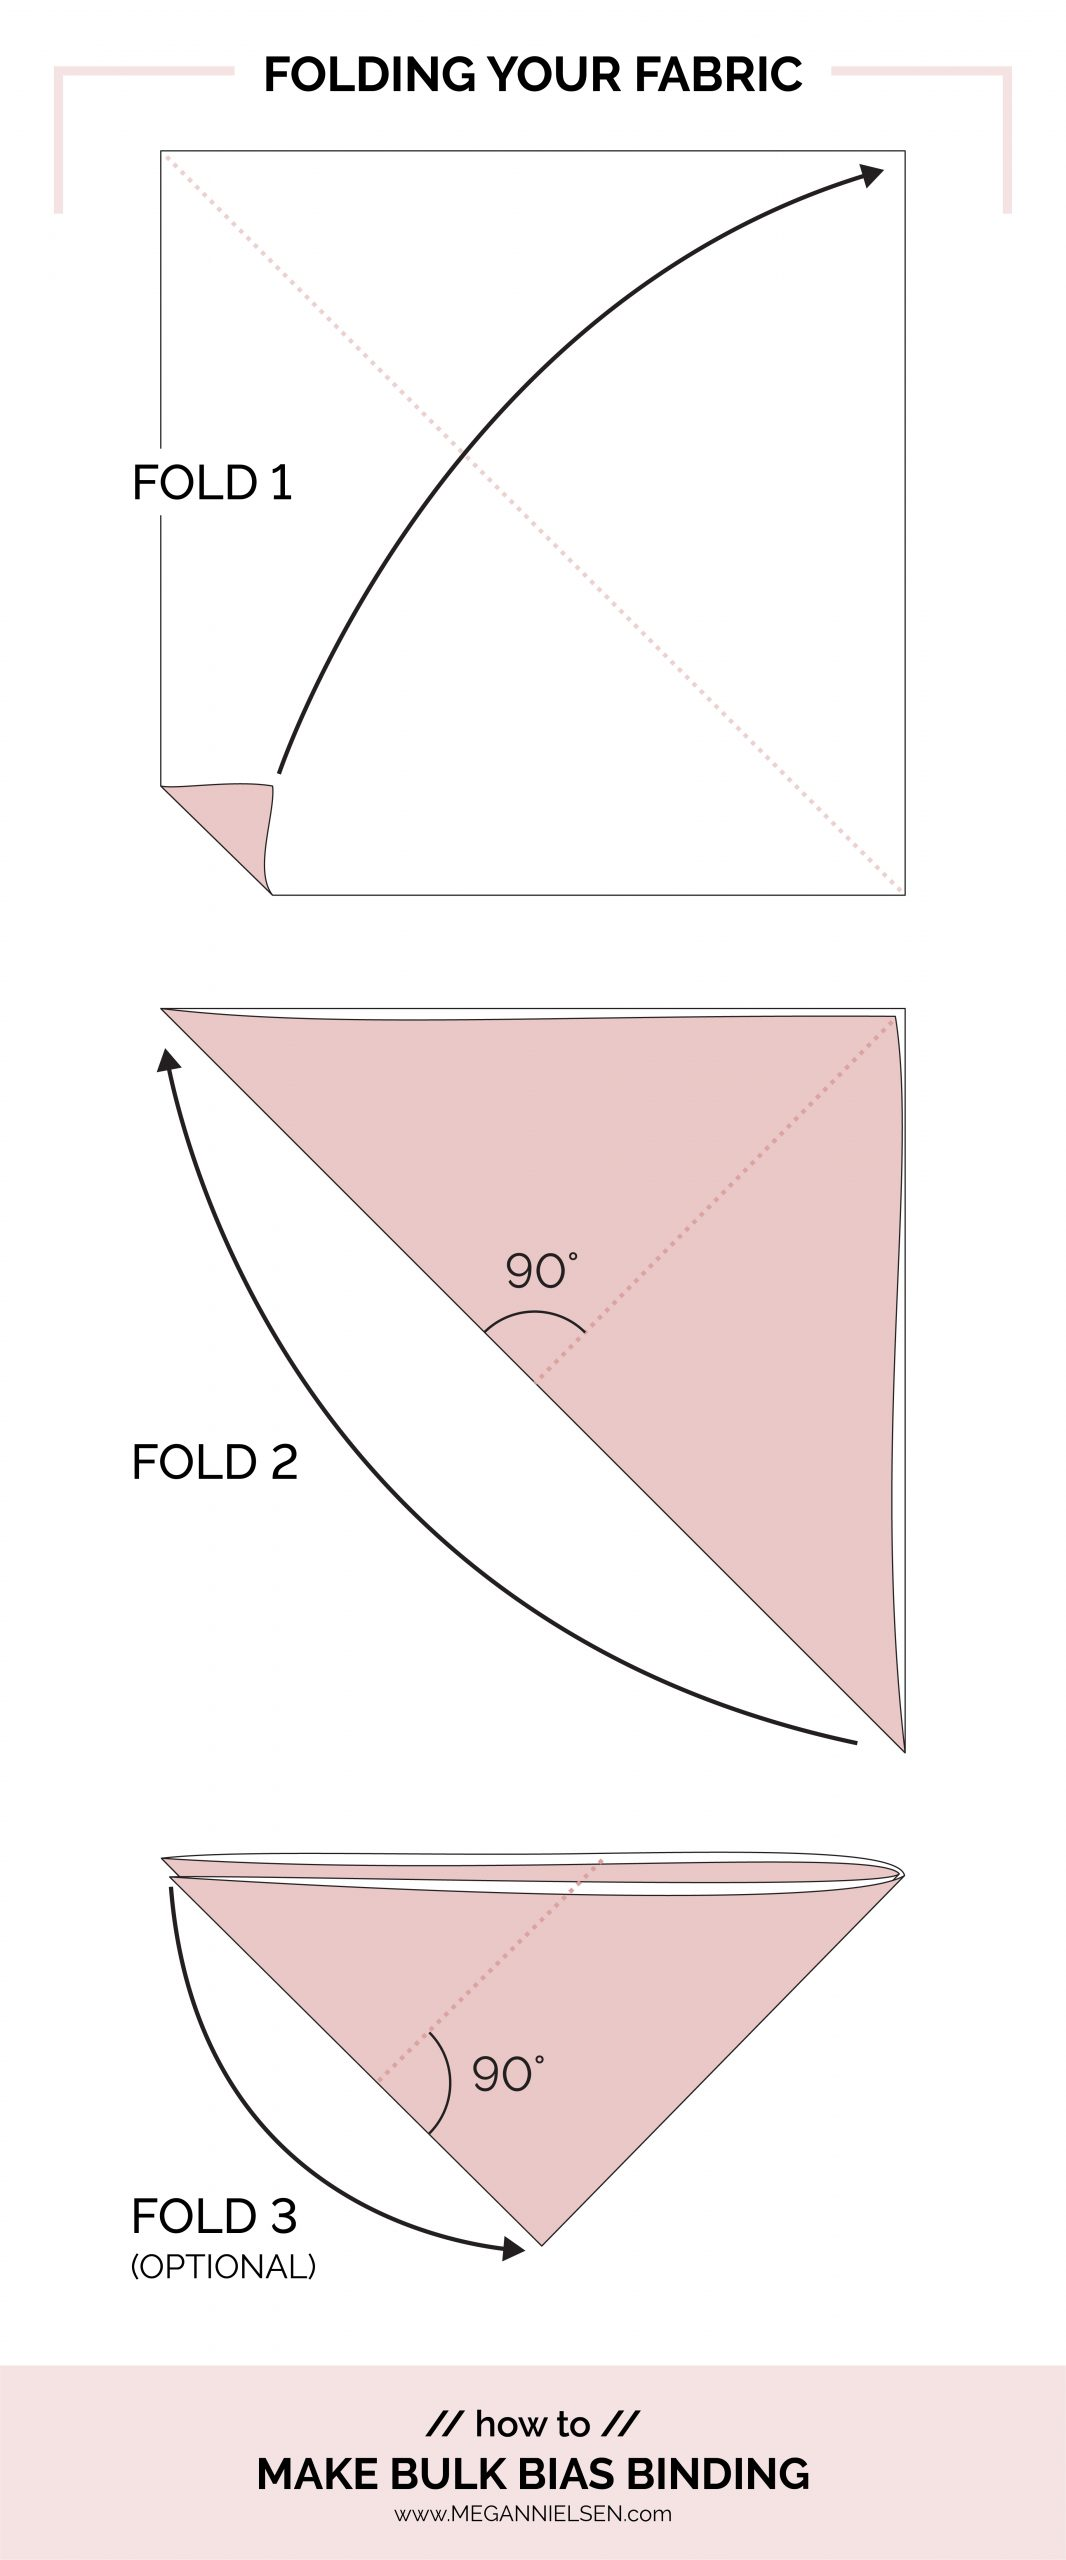 How To Make Bulk Bias Binding - Folding Your Fabric